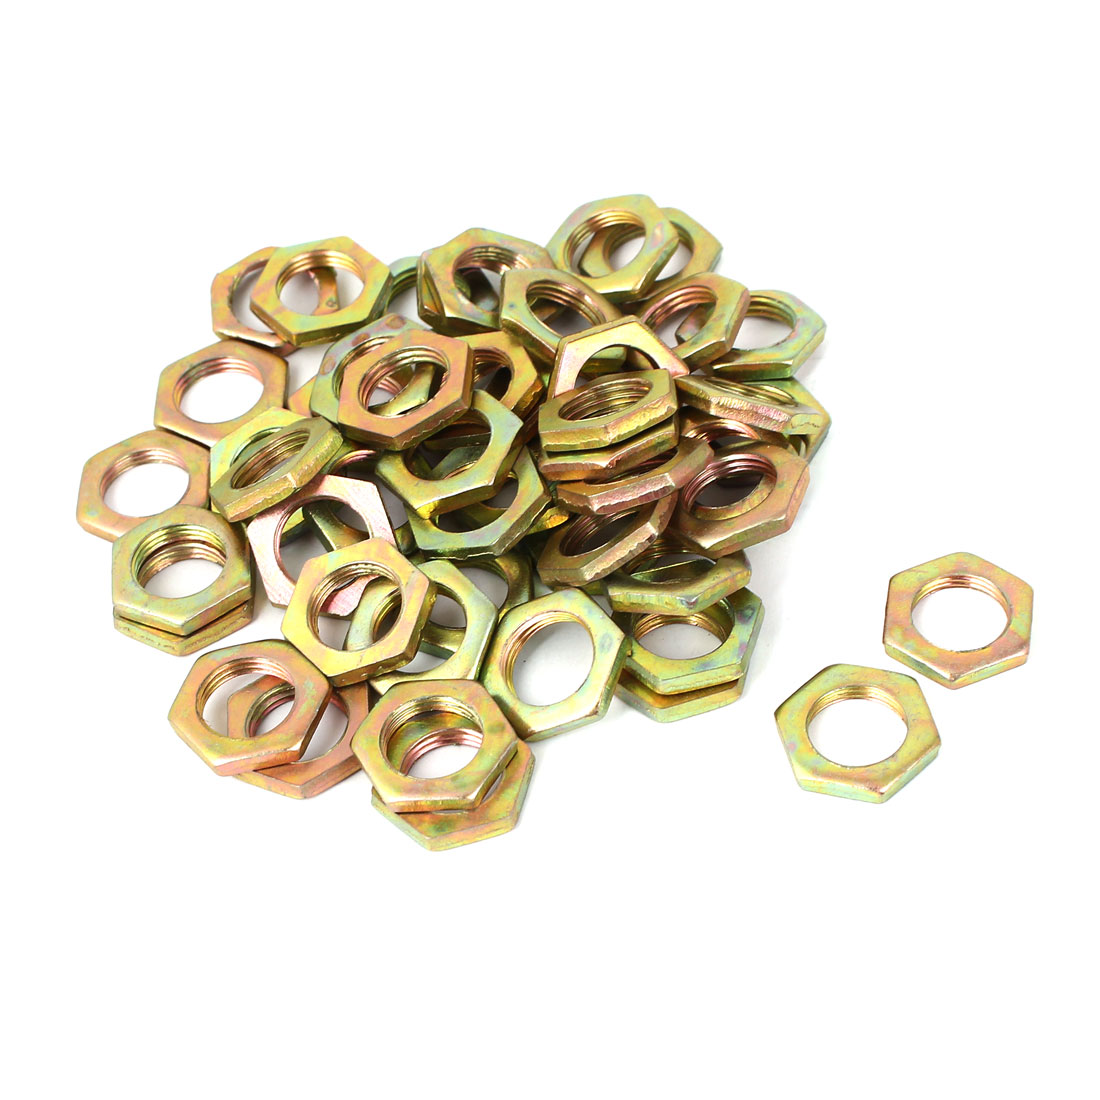 M12x1mmx3mm Carbon Steel Hex Nuts Fastener 50pcs for Screws Bolts